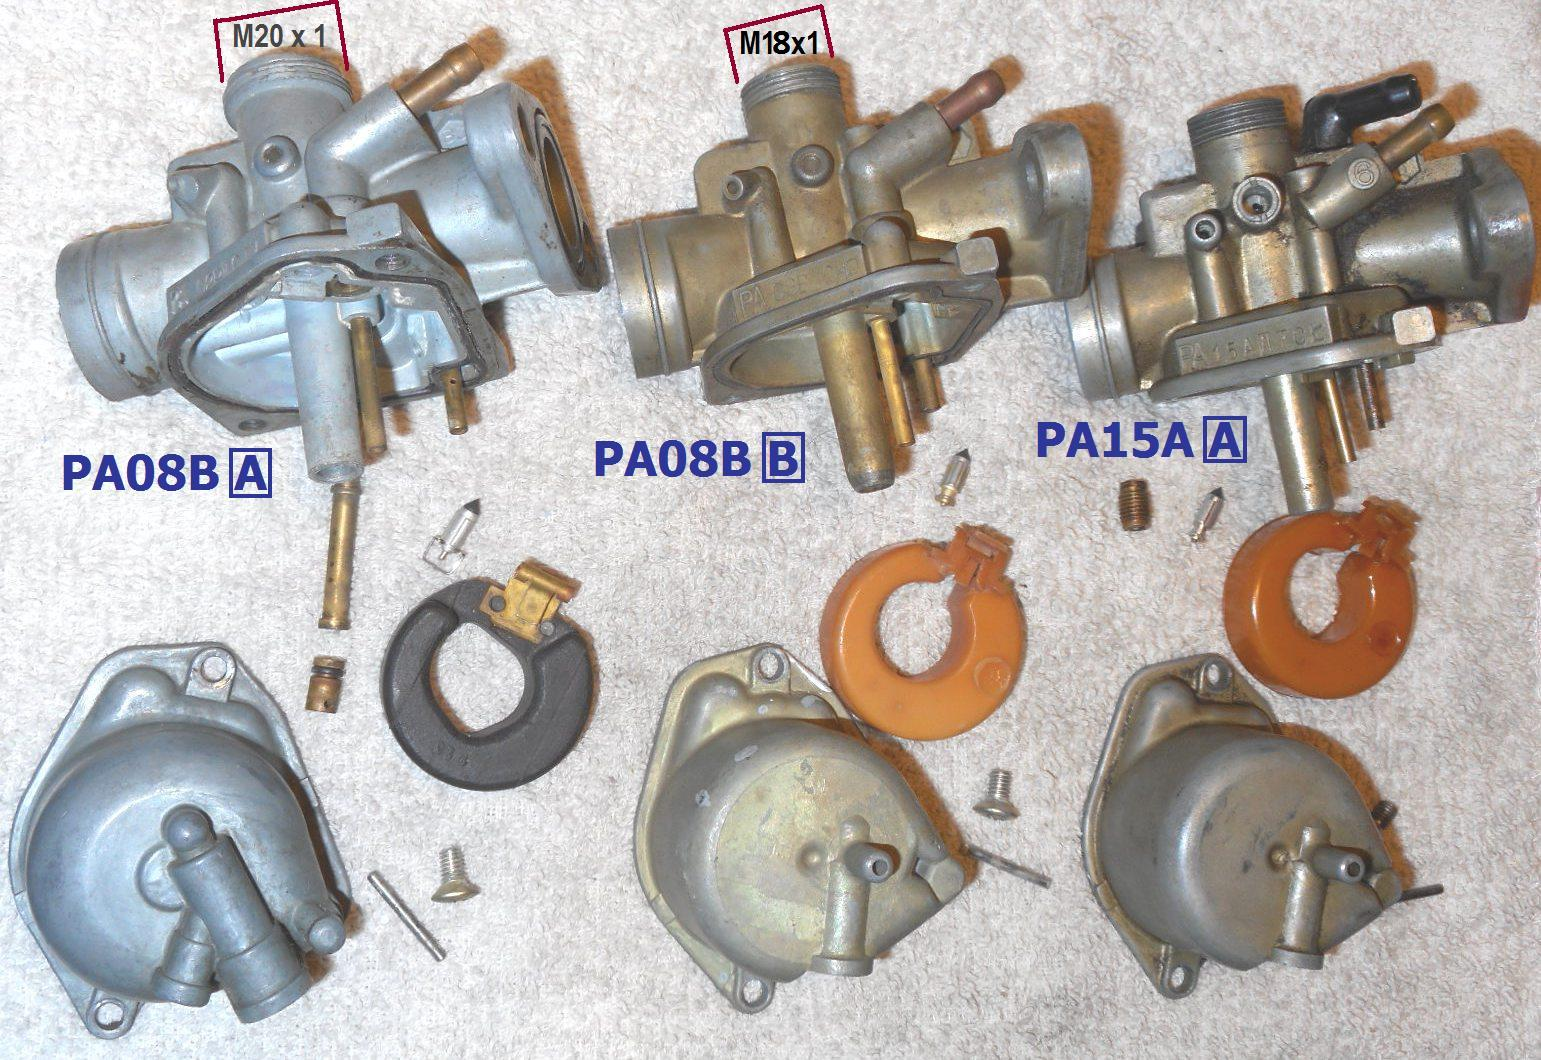 hight resolution of honda express carburetor versions showing things that are different